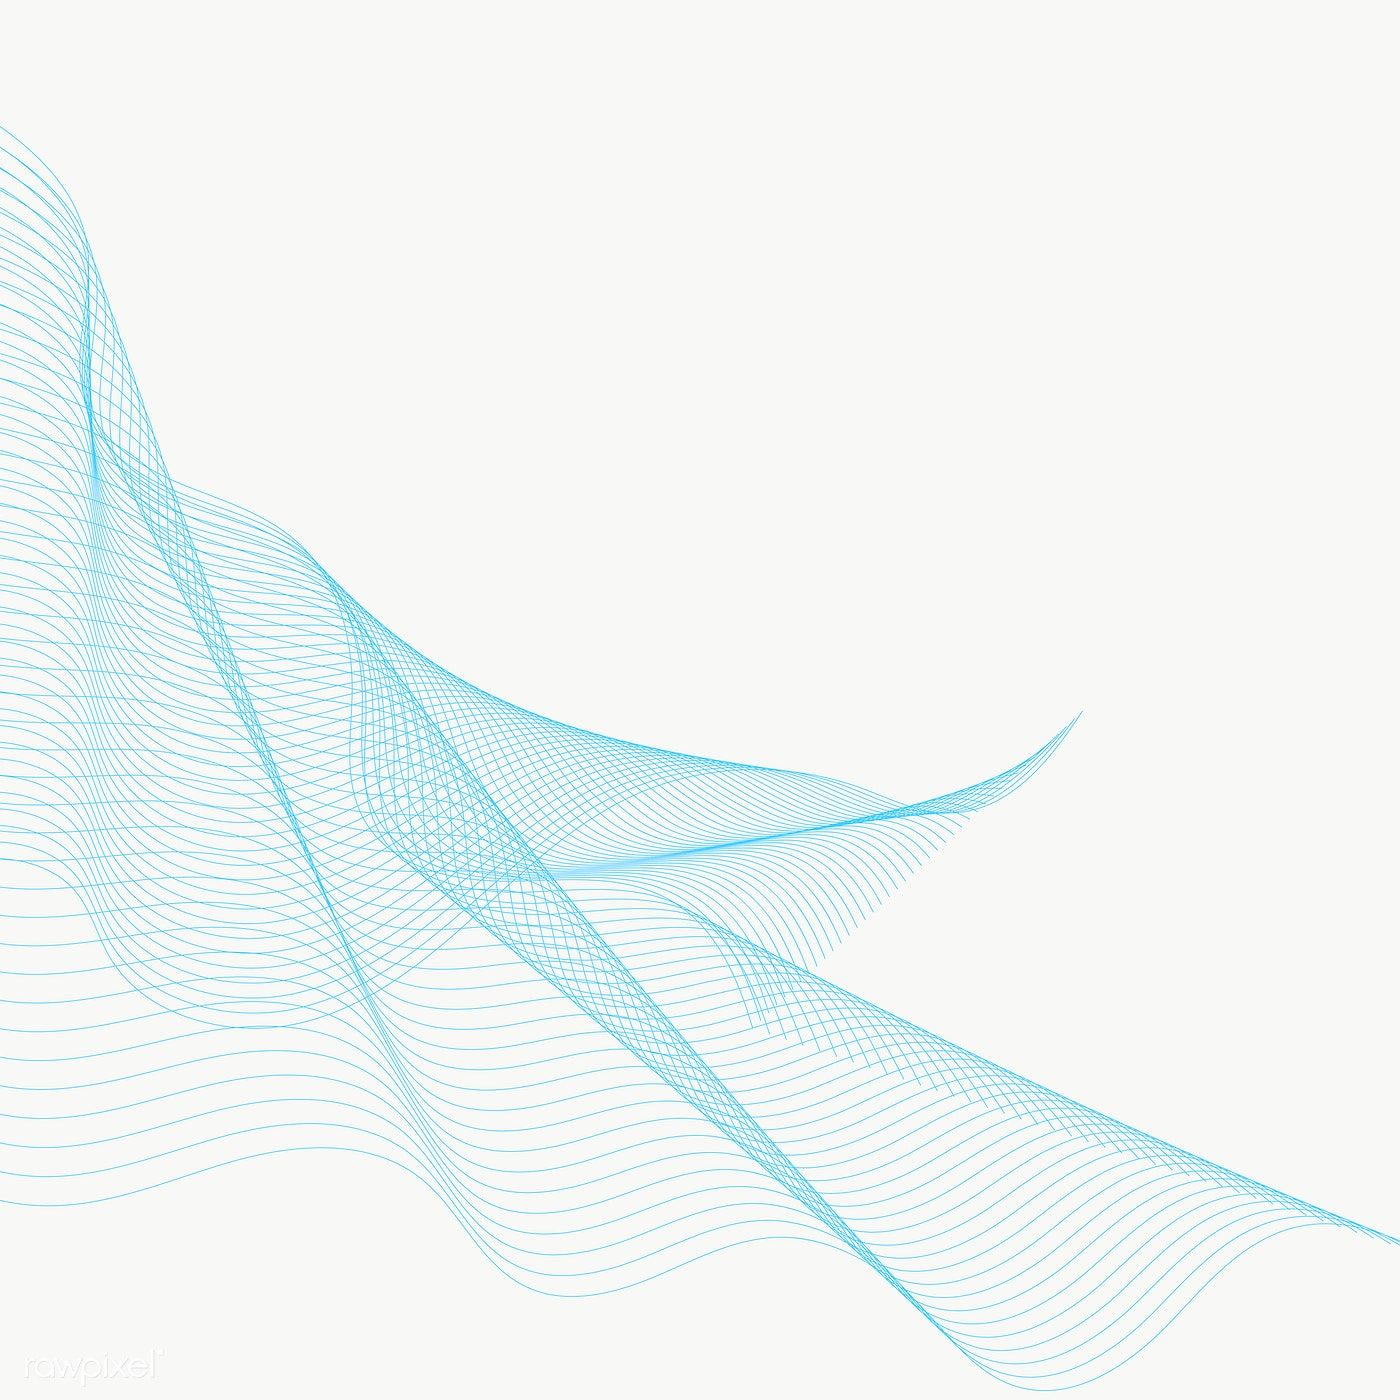 Blue Swirly Abstract Line Design Element Free Image By Rawpixel Com Nunny Abstract Lines Design Element Line Design